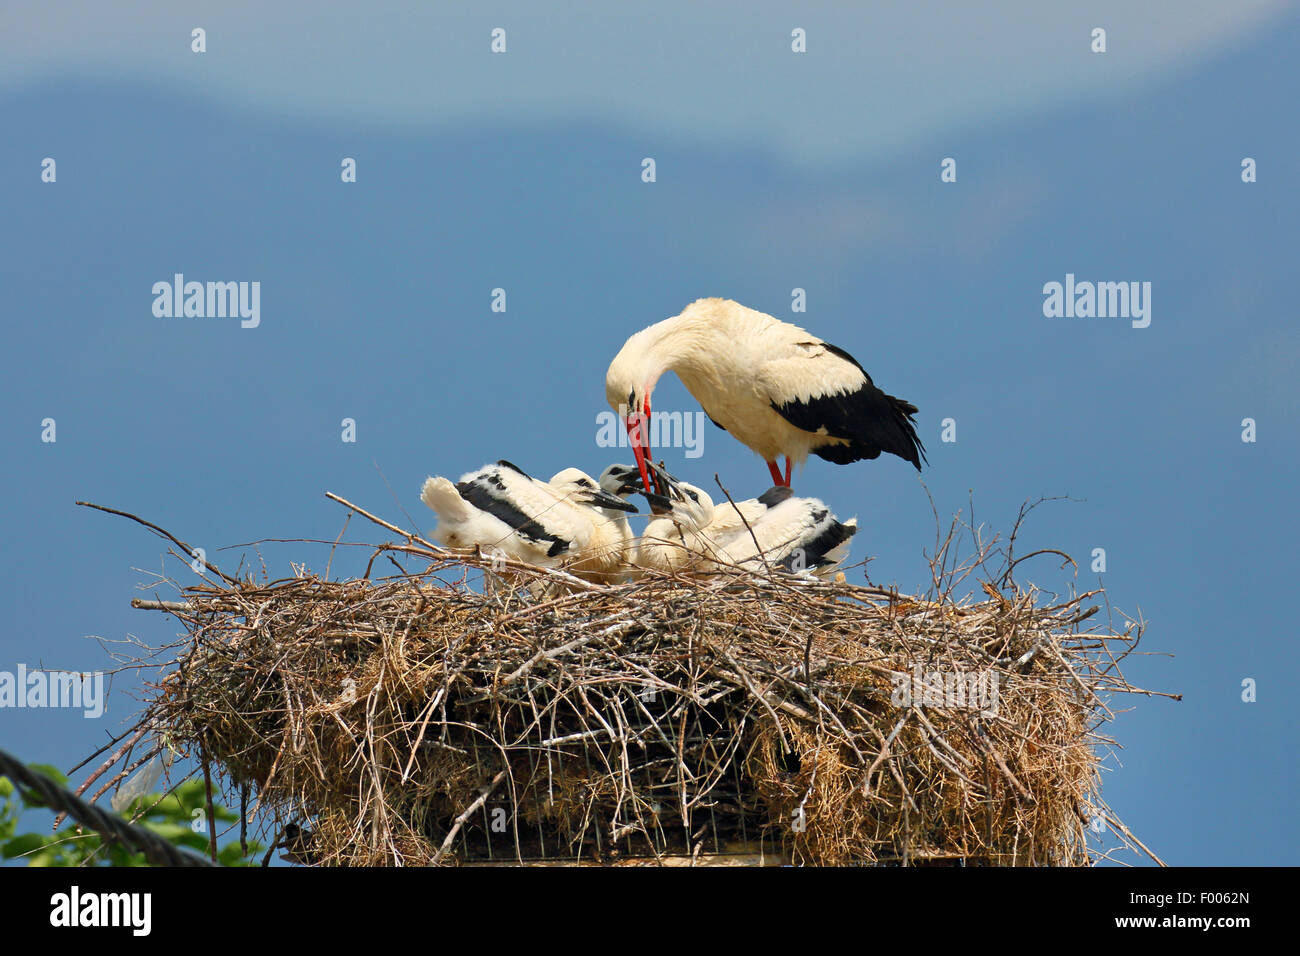 white stork (Ciconia ciconia), adult bird feeding young birds in the nest, Greece, Lake Kerkini Stock Photo